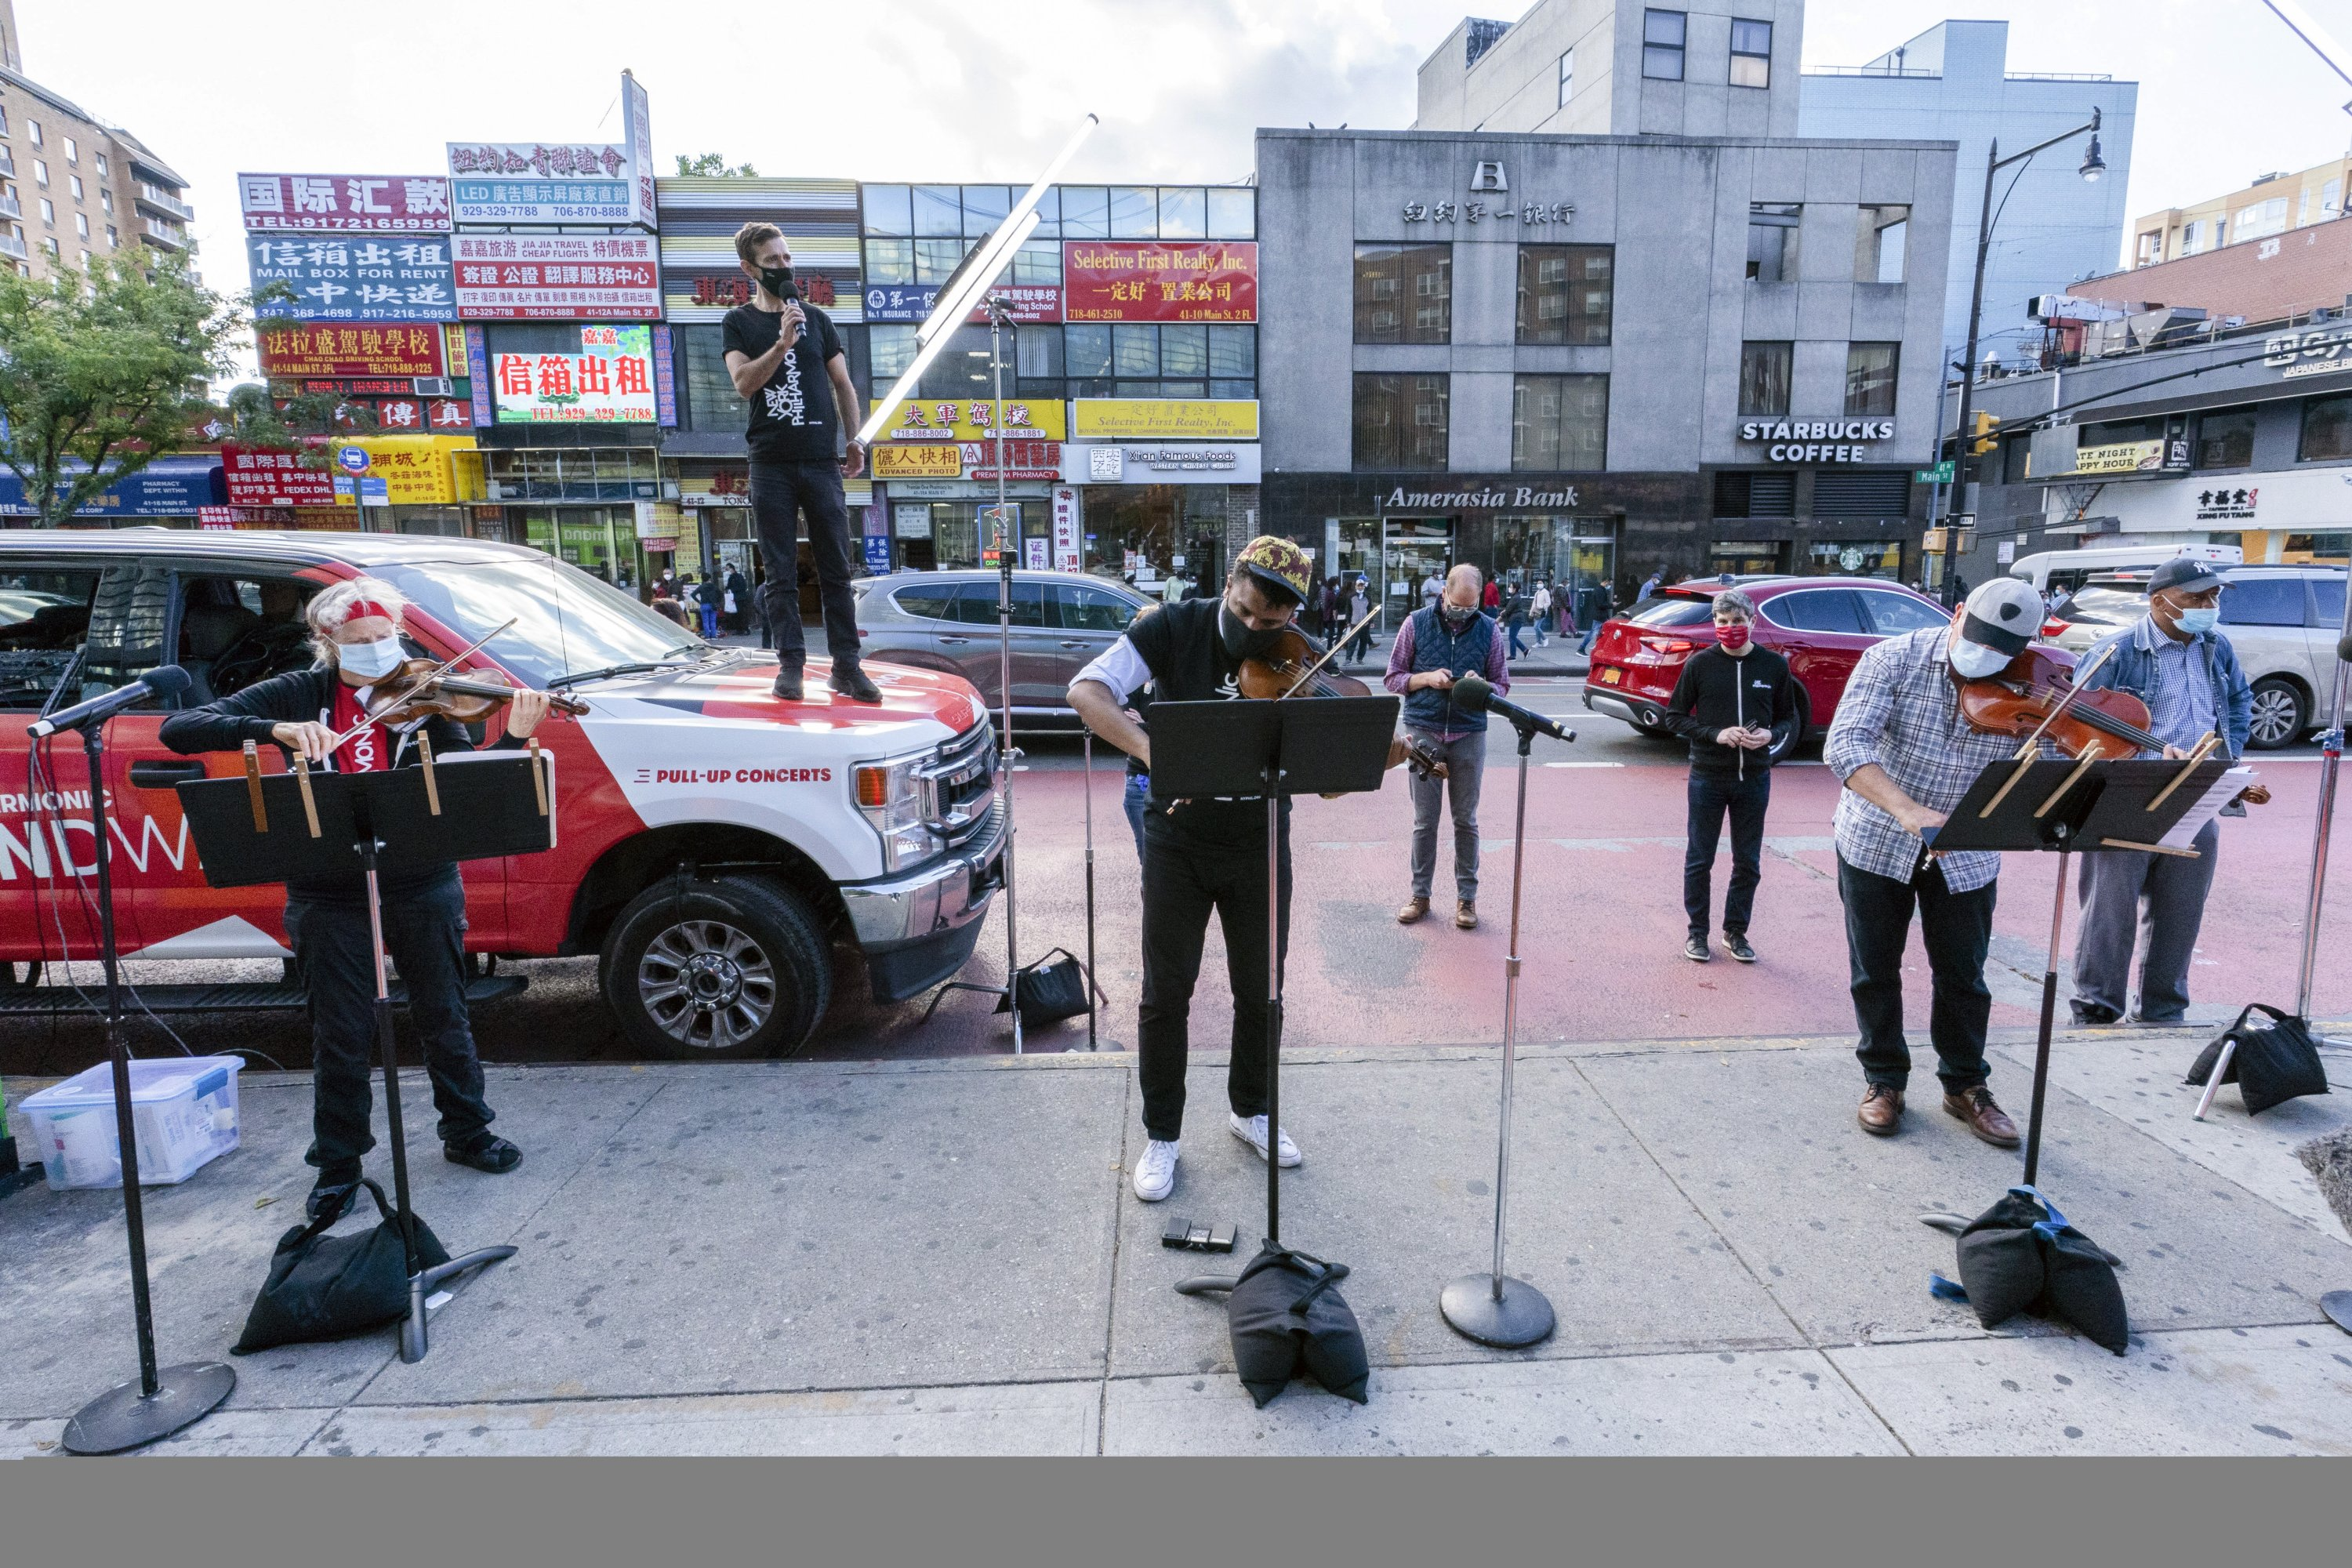 Members of the NY Phil Bandwagon (from L) violinist Fiona Simon, countertenor and producer Anthony Roth Costanzo, violinist Curtis Stewart and viola player Robert Rinehart perform in the Flushing neighborhood of the Queens borough of New York, Oct. 2, 2020. (AP PHOTO)